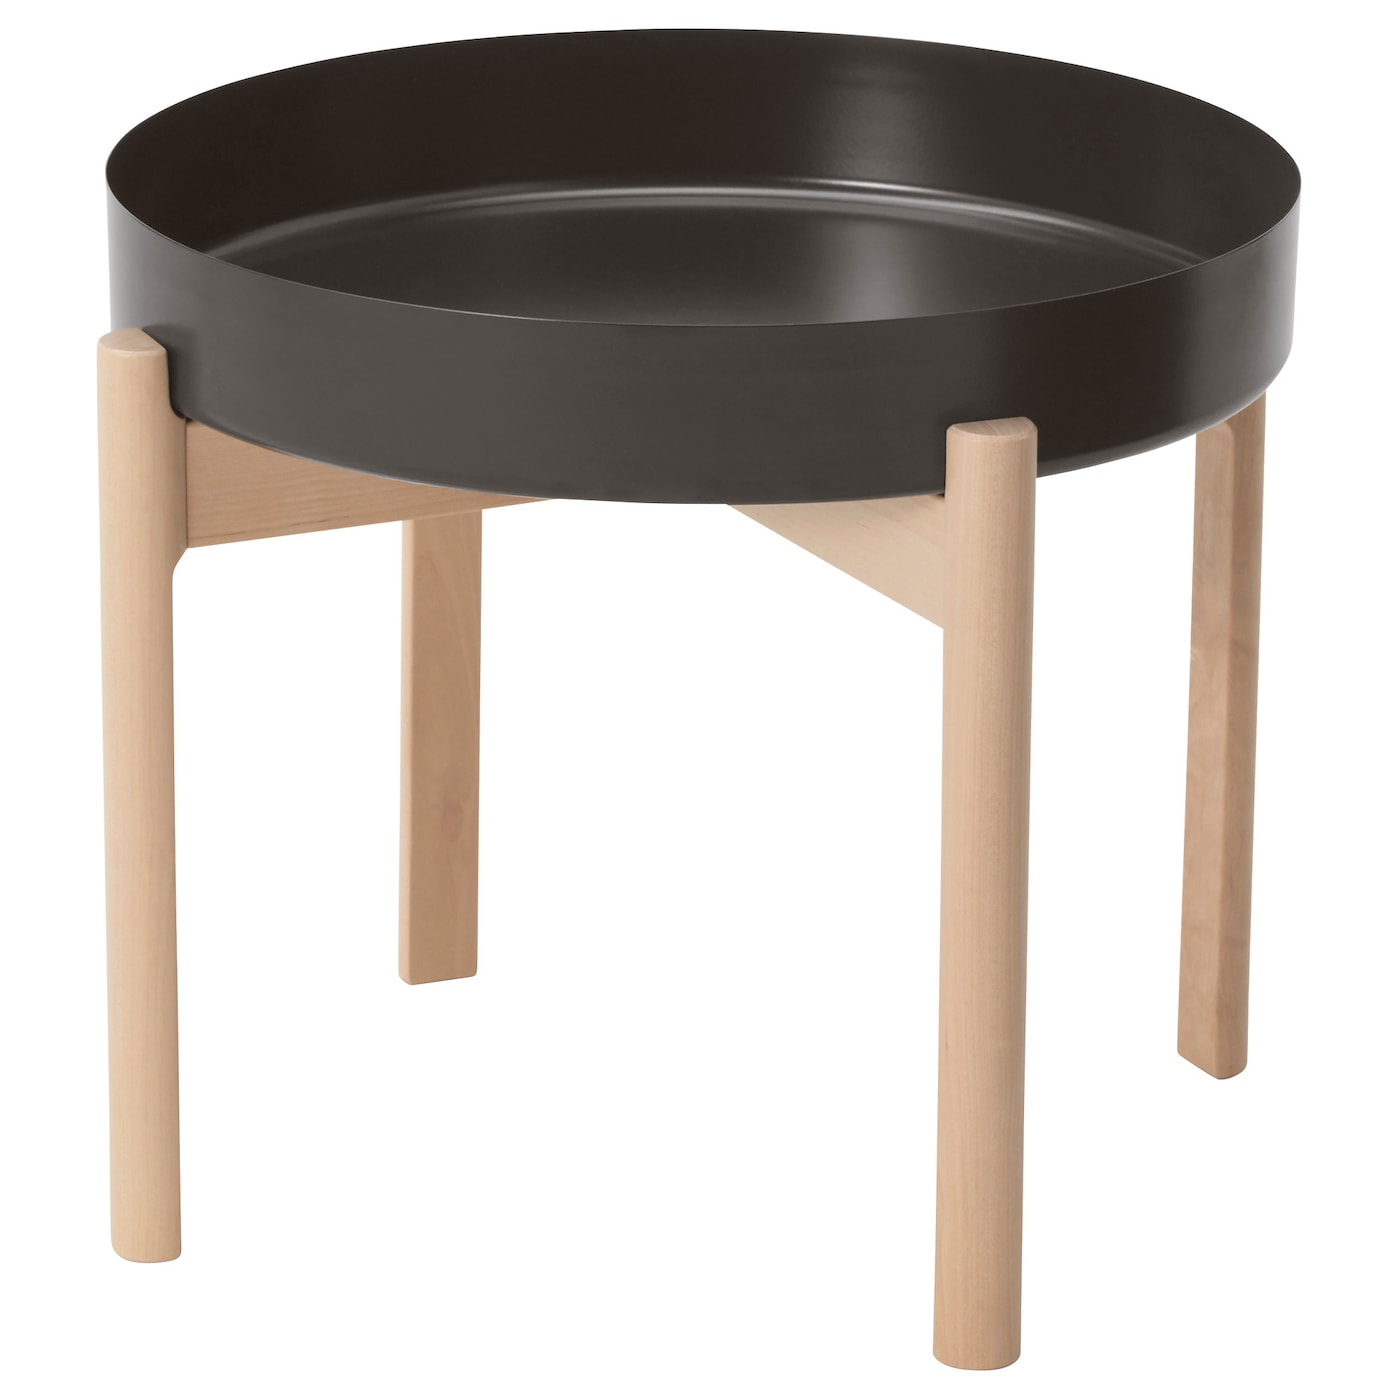 Ypperlig coffee table dark grey birch 50 cm ikea for Table de fusion ikea